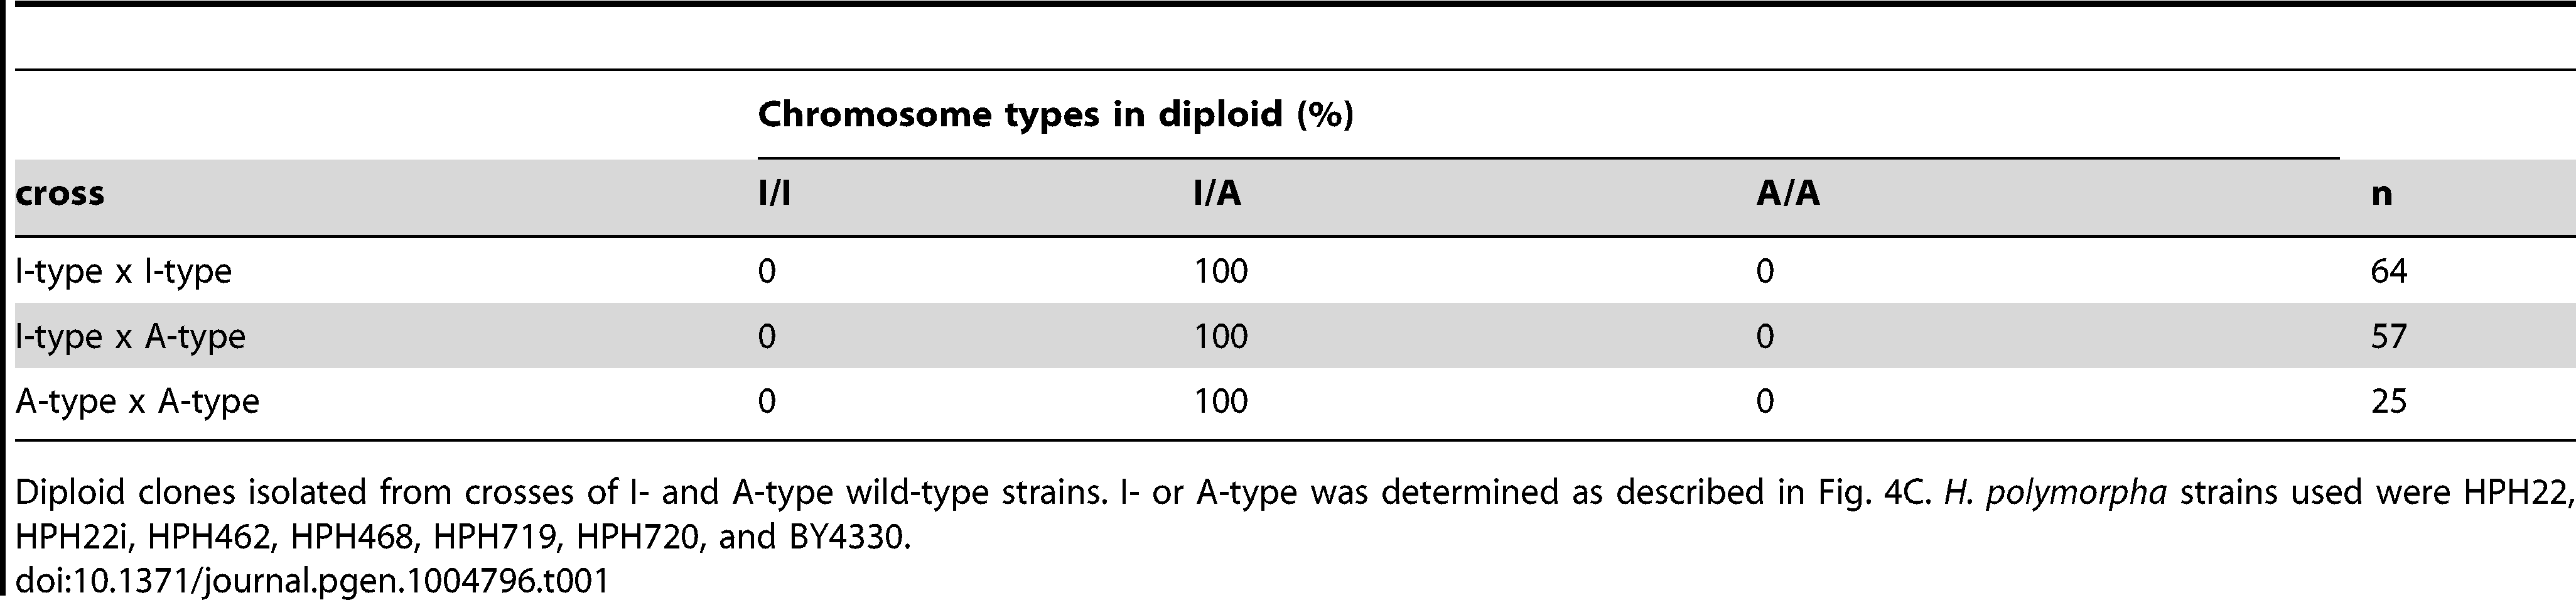 Chromosome type in diploid isolates.